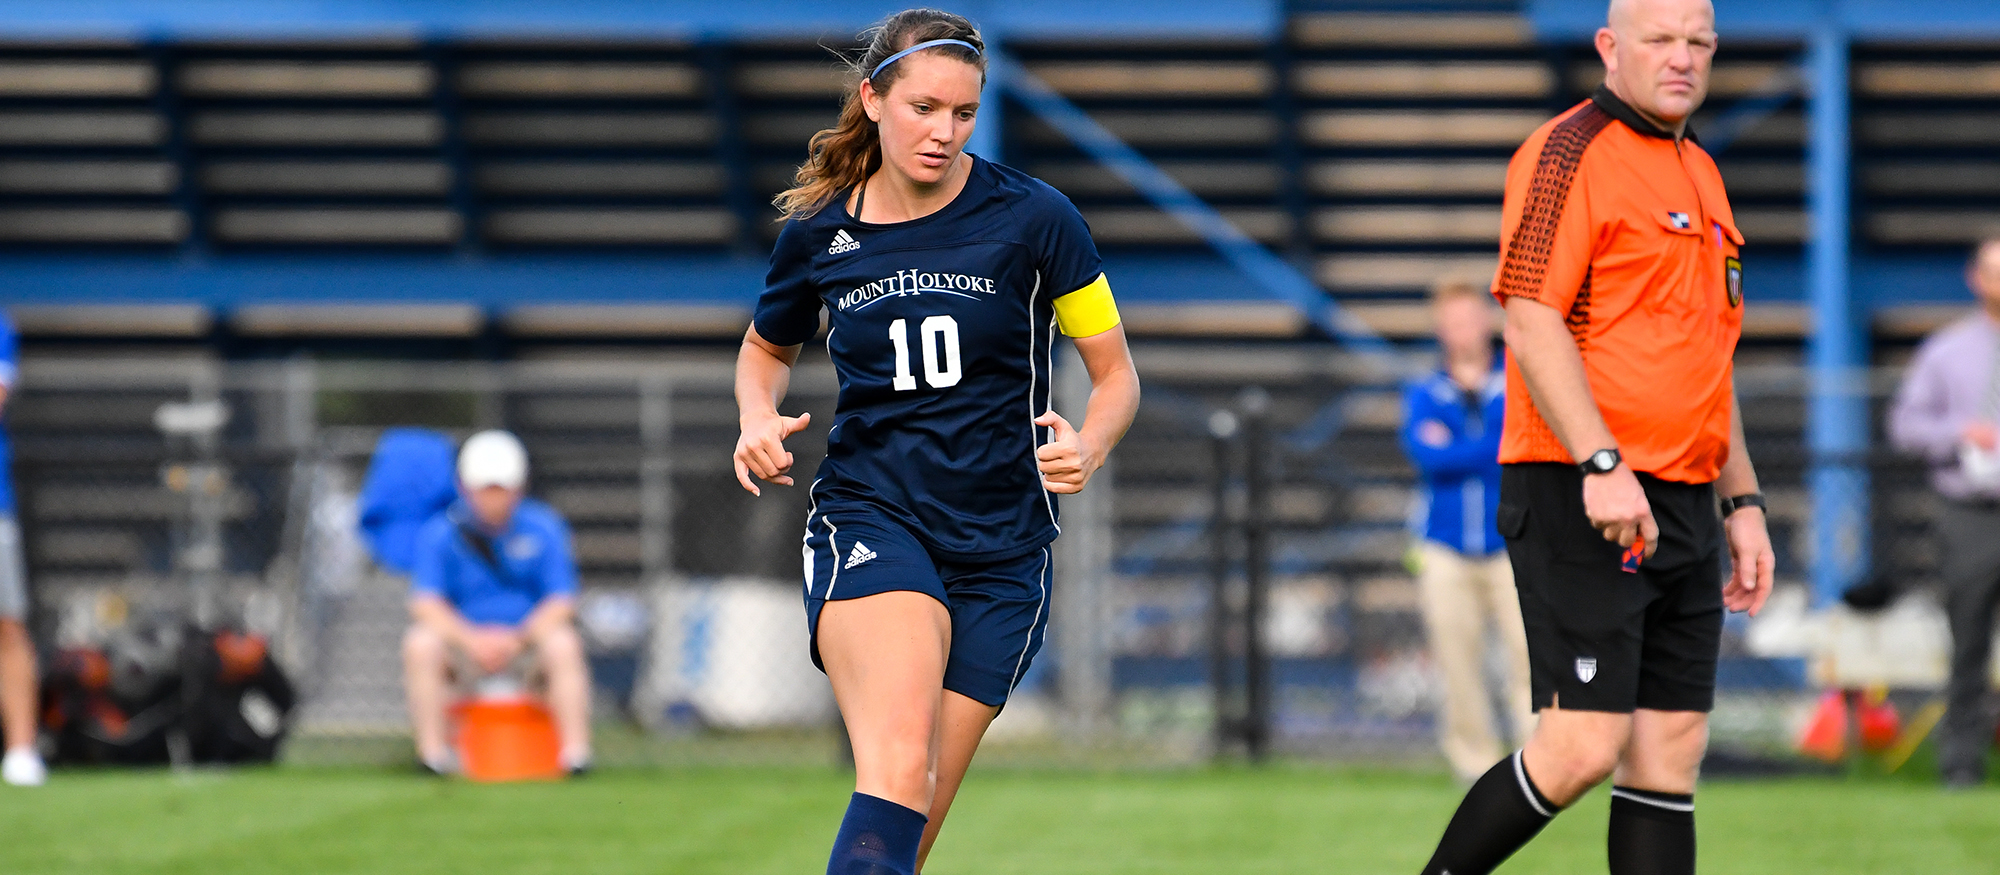 Soccer Falls Short of Saint Joseph, 3-2, in Non-Conference Play